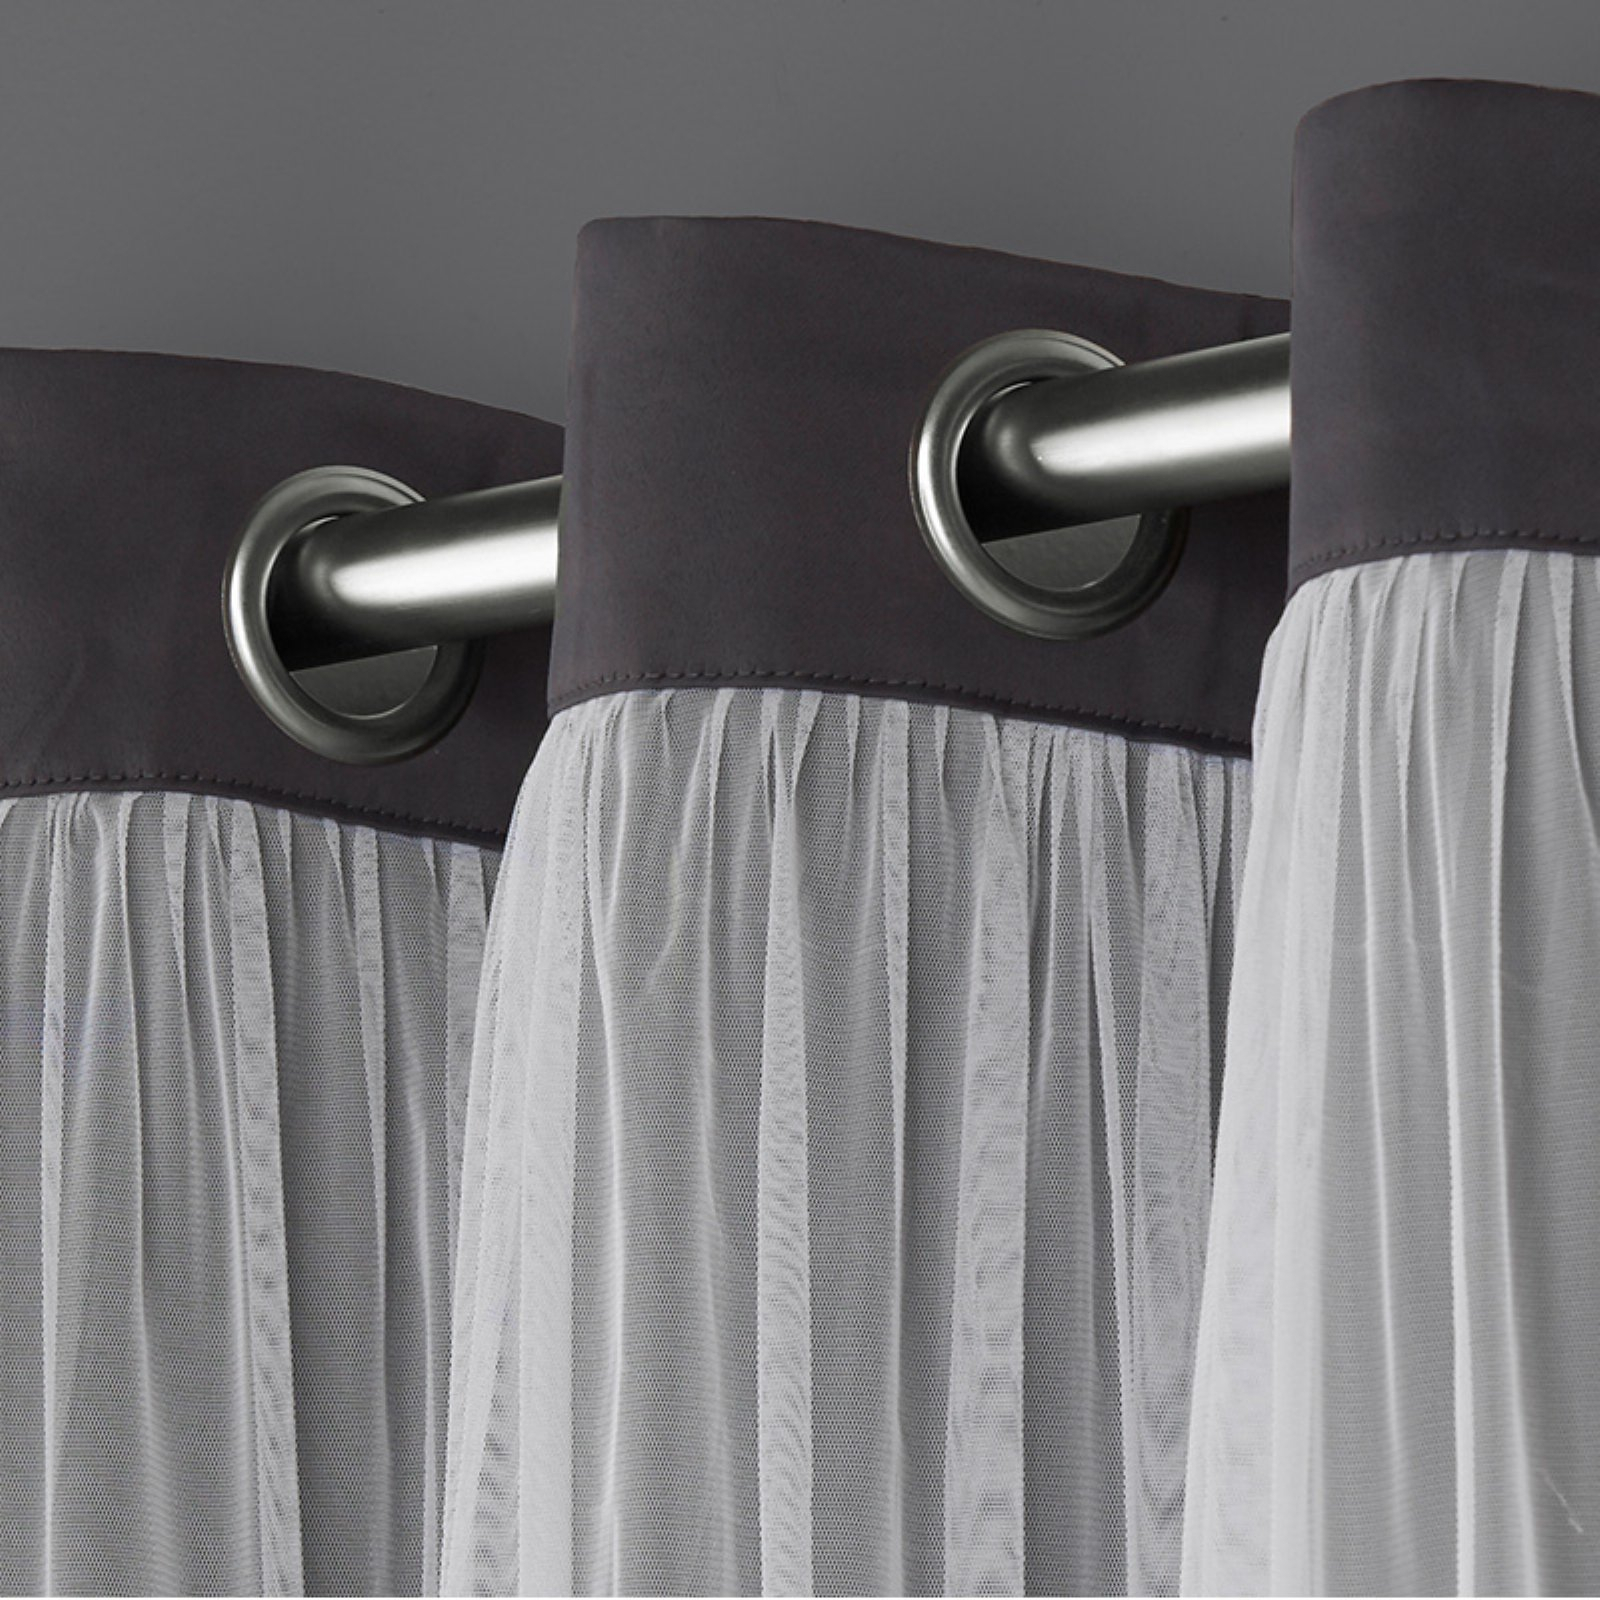 Exclusive Home Curtains 2 Pack Catarina Layered Solid Blackout And Sheer Grommet Top Curtain Panels Intended For Catarina Layered Curtain Panel Pairs With Grommet Top (View 17 of 20)